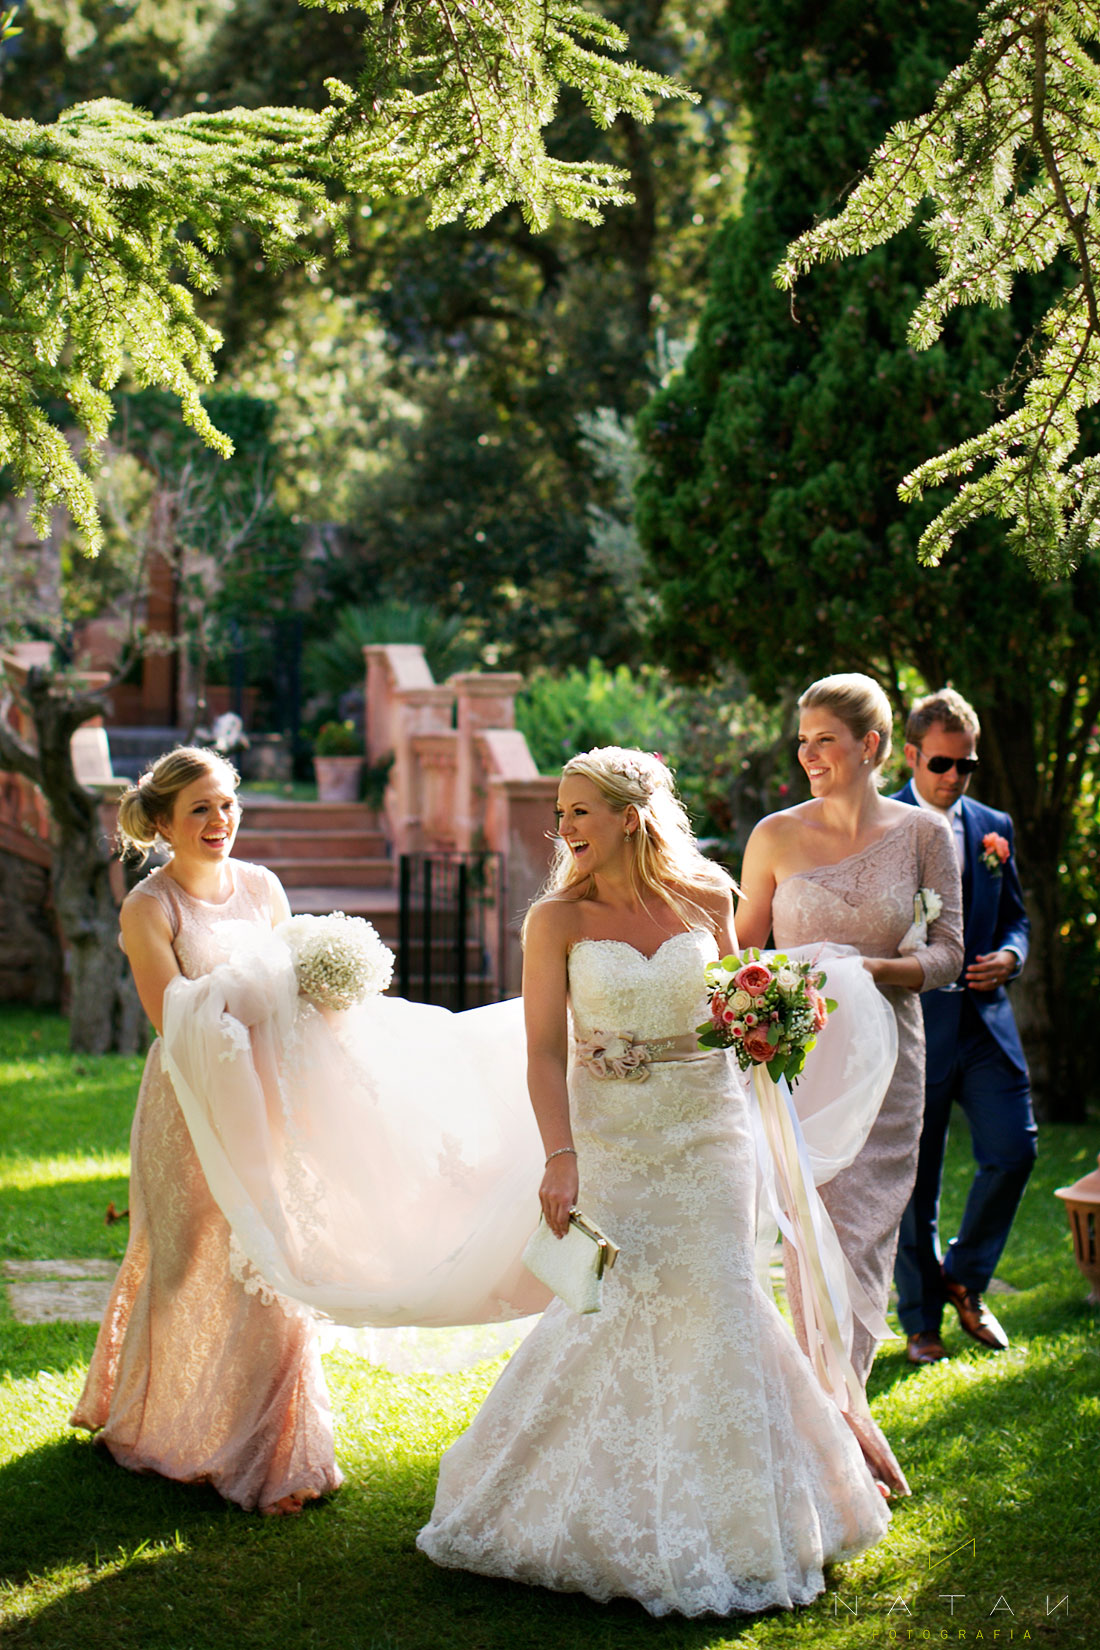 WEDDING-VALLDEMOSA-040